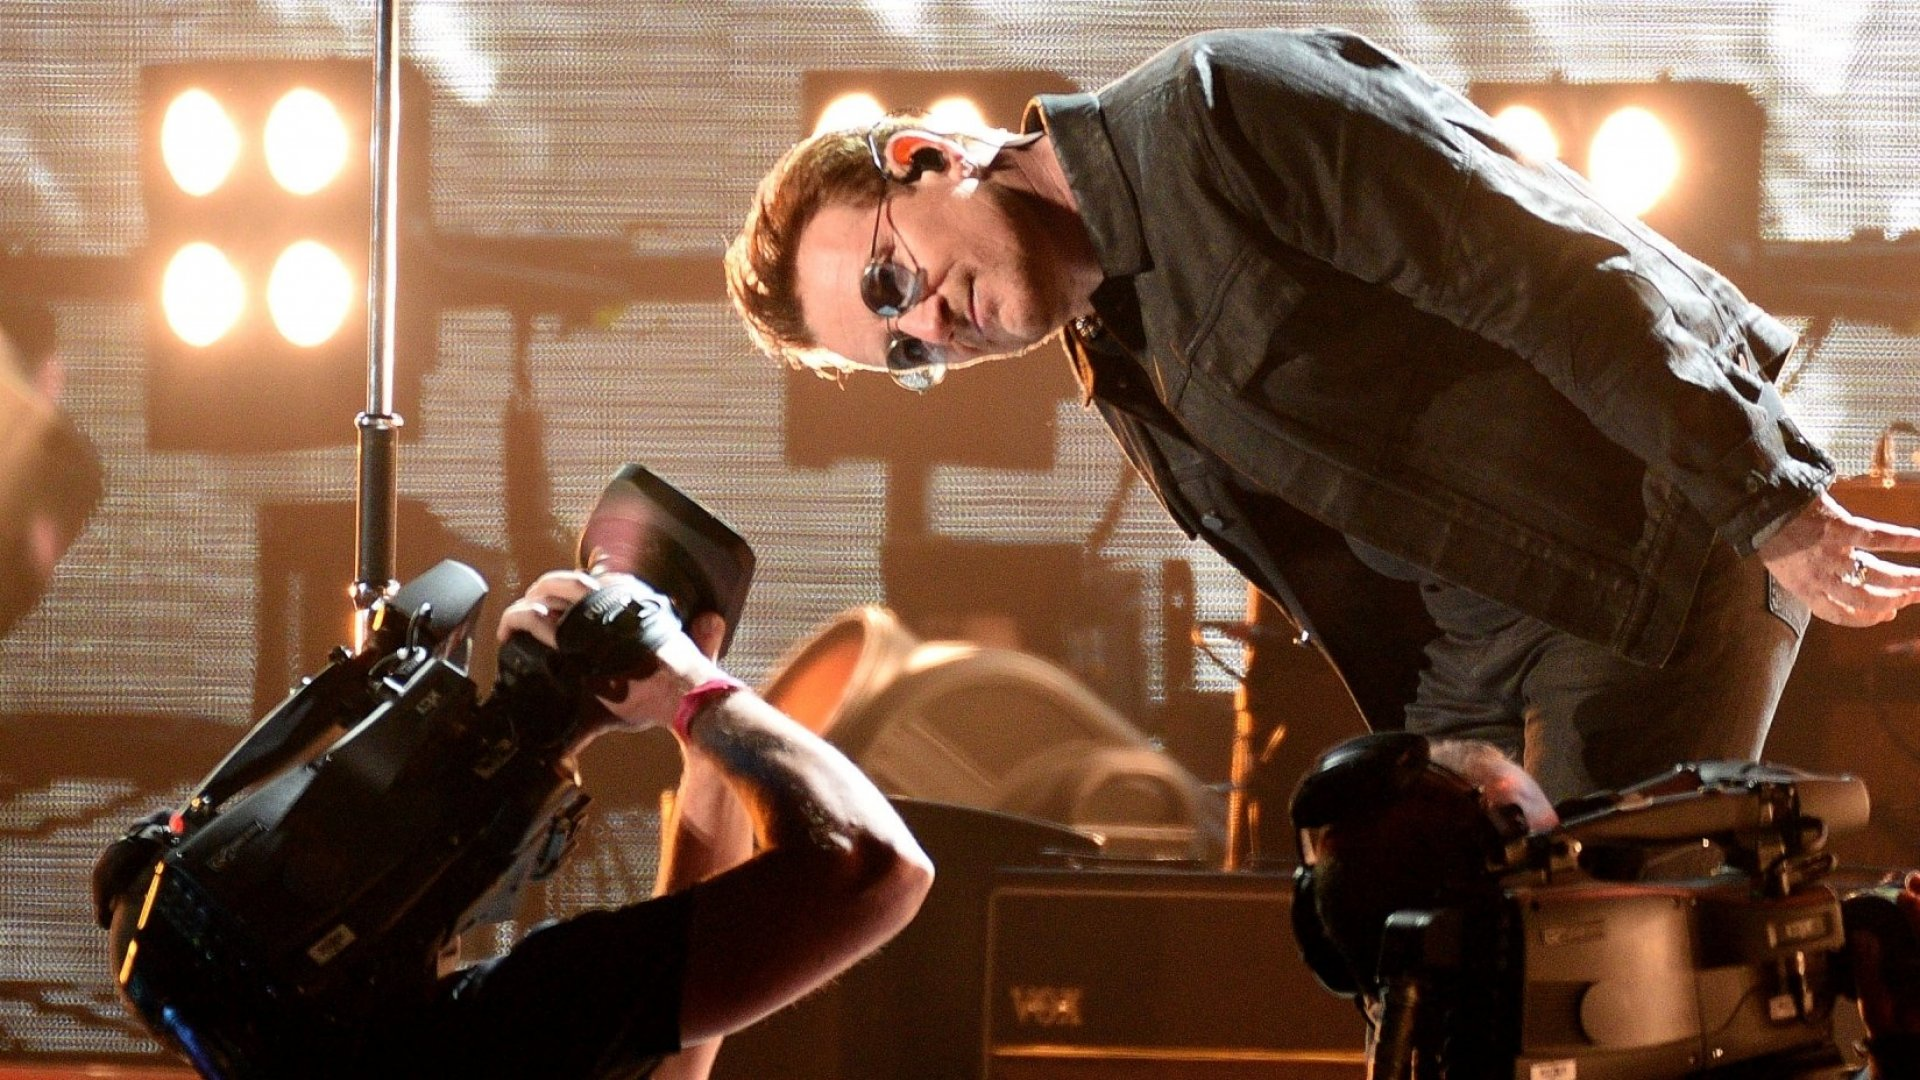 Bono of U2 performs during the 2016 UCSF Benioff Children's Hospital Benefit Concert during the 2016 Salesforce / Dreamforce Conference at the 'Cloud Palace' Cow Palace on October 5, 2016 in Daly City, California. (Photo by C Flanigan/FilmMagic)